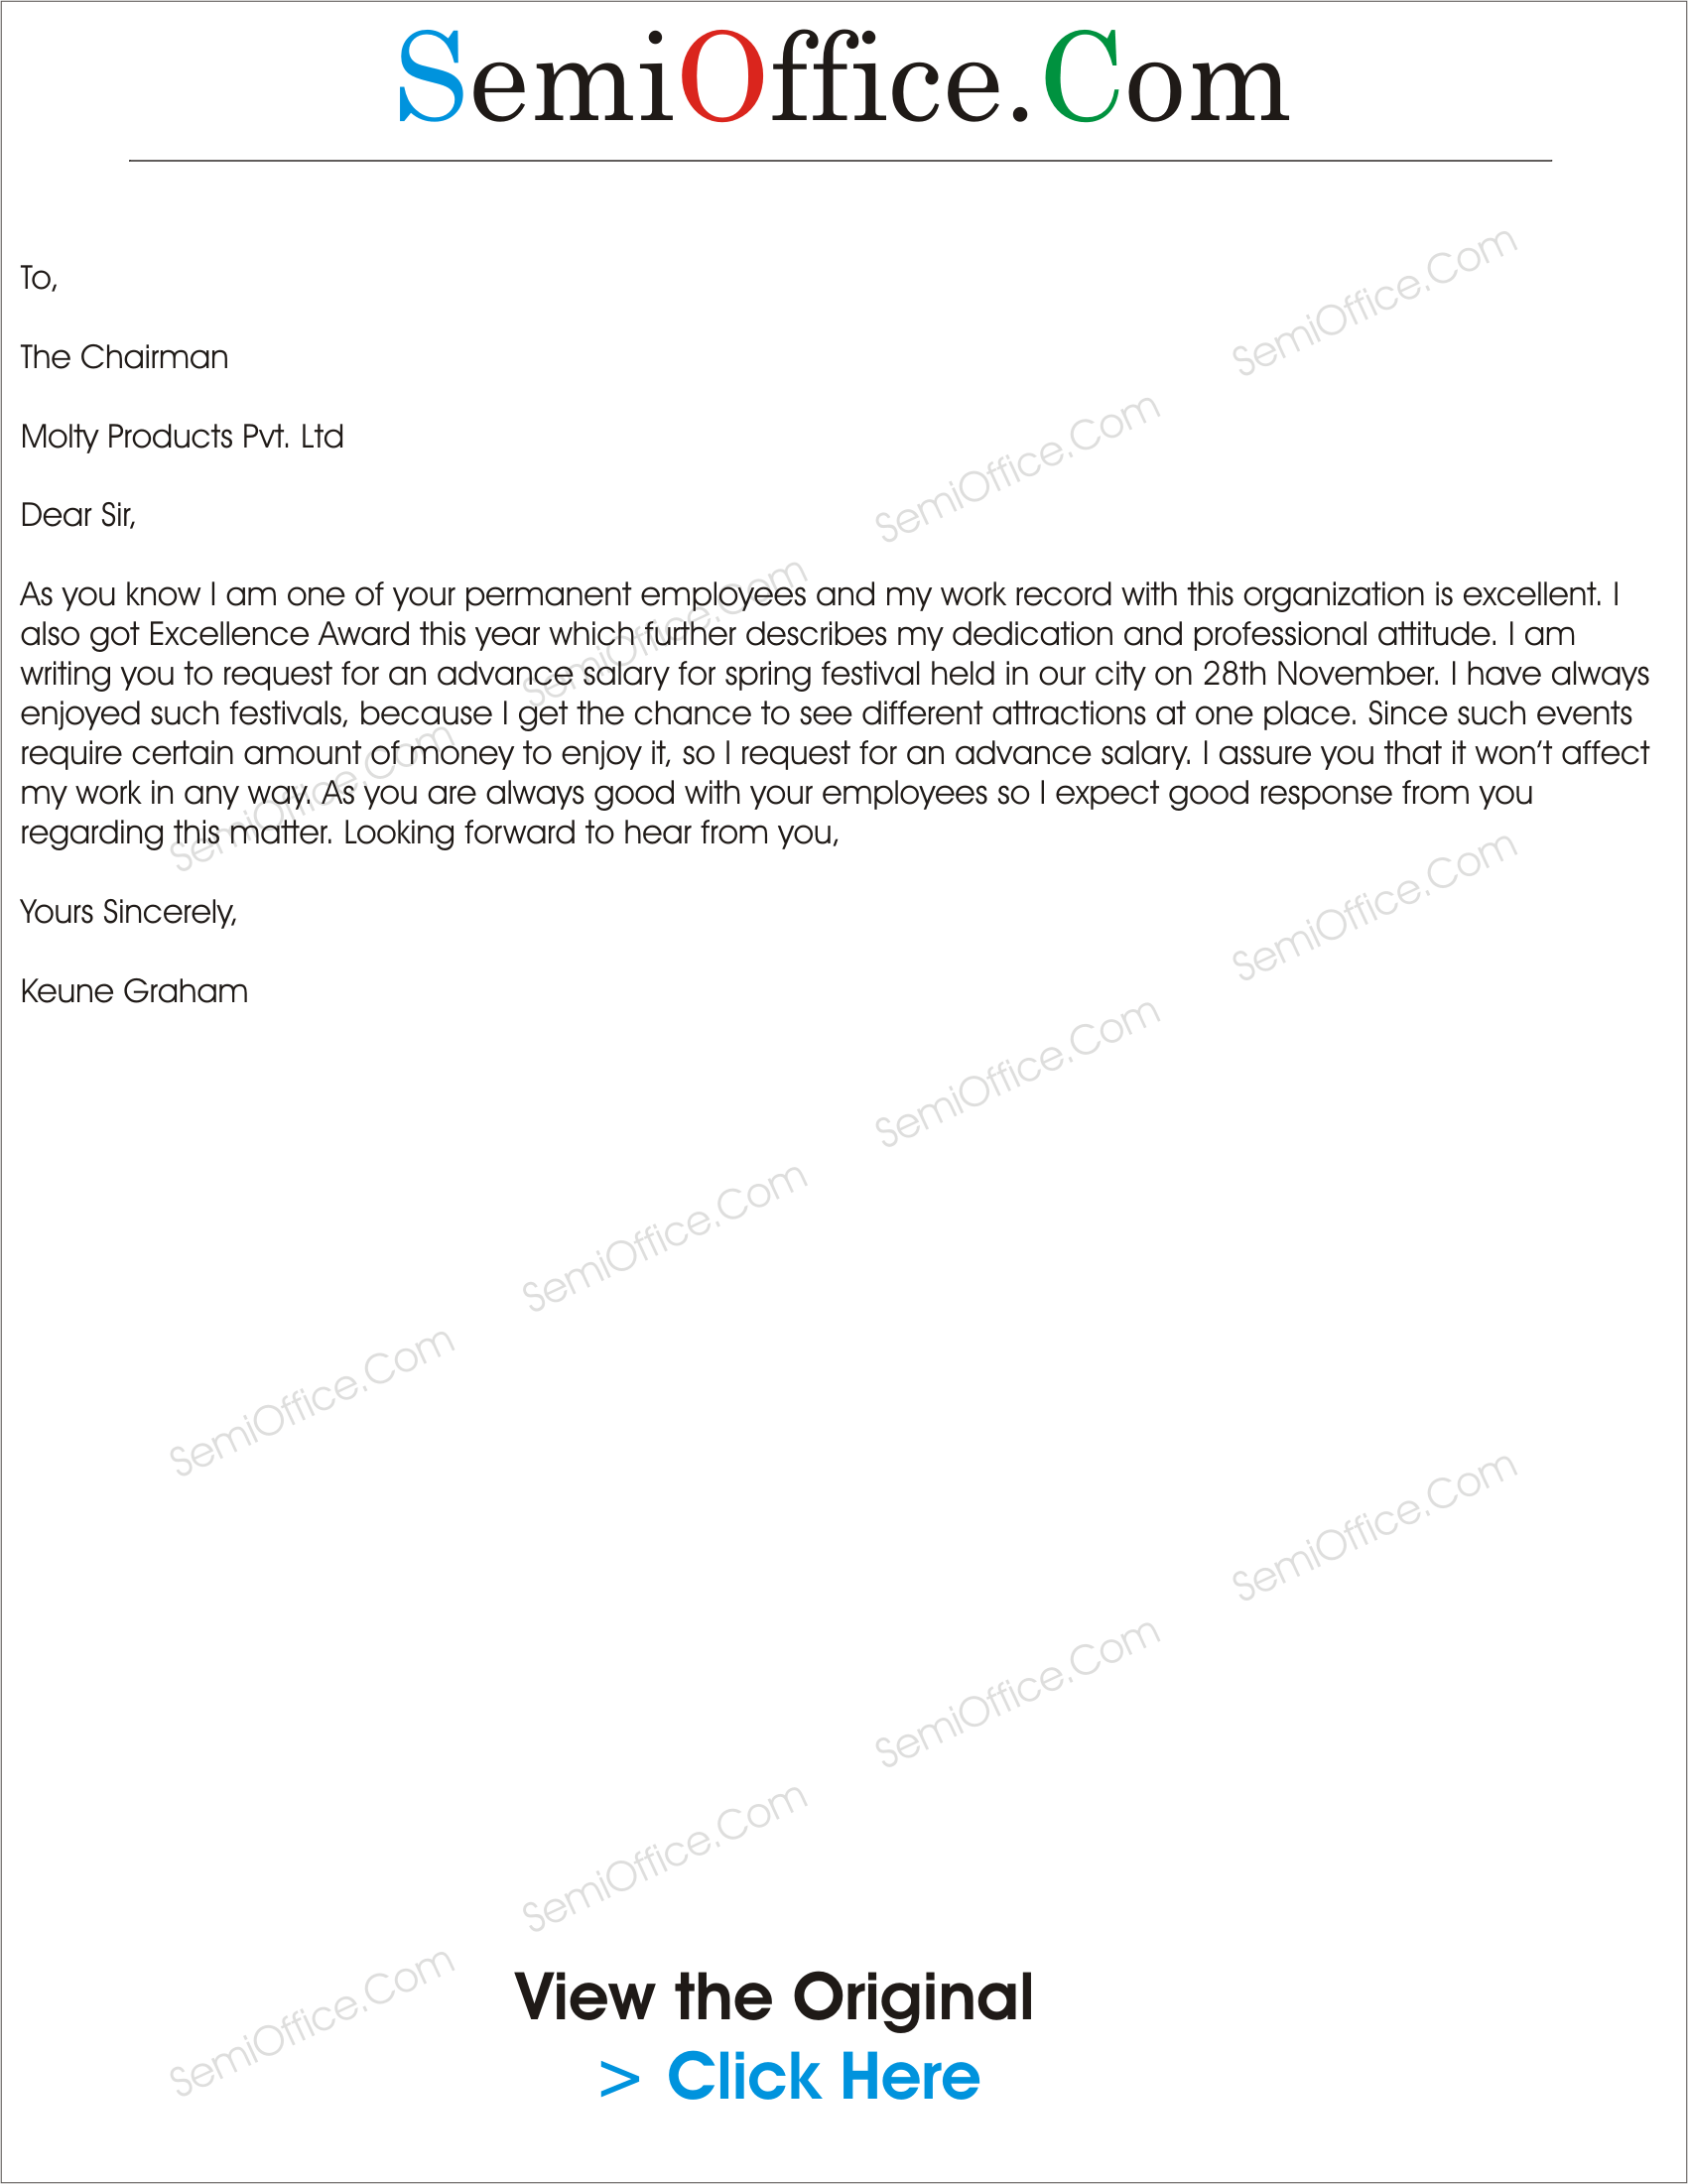 Application for advance salary for festival advance salary request letter for festival spiritdancerdesigns Choice Image